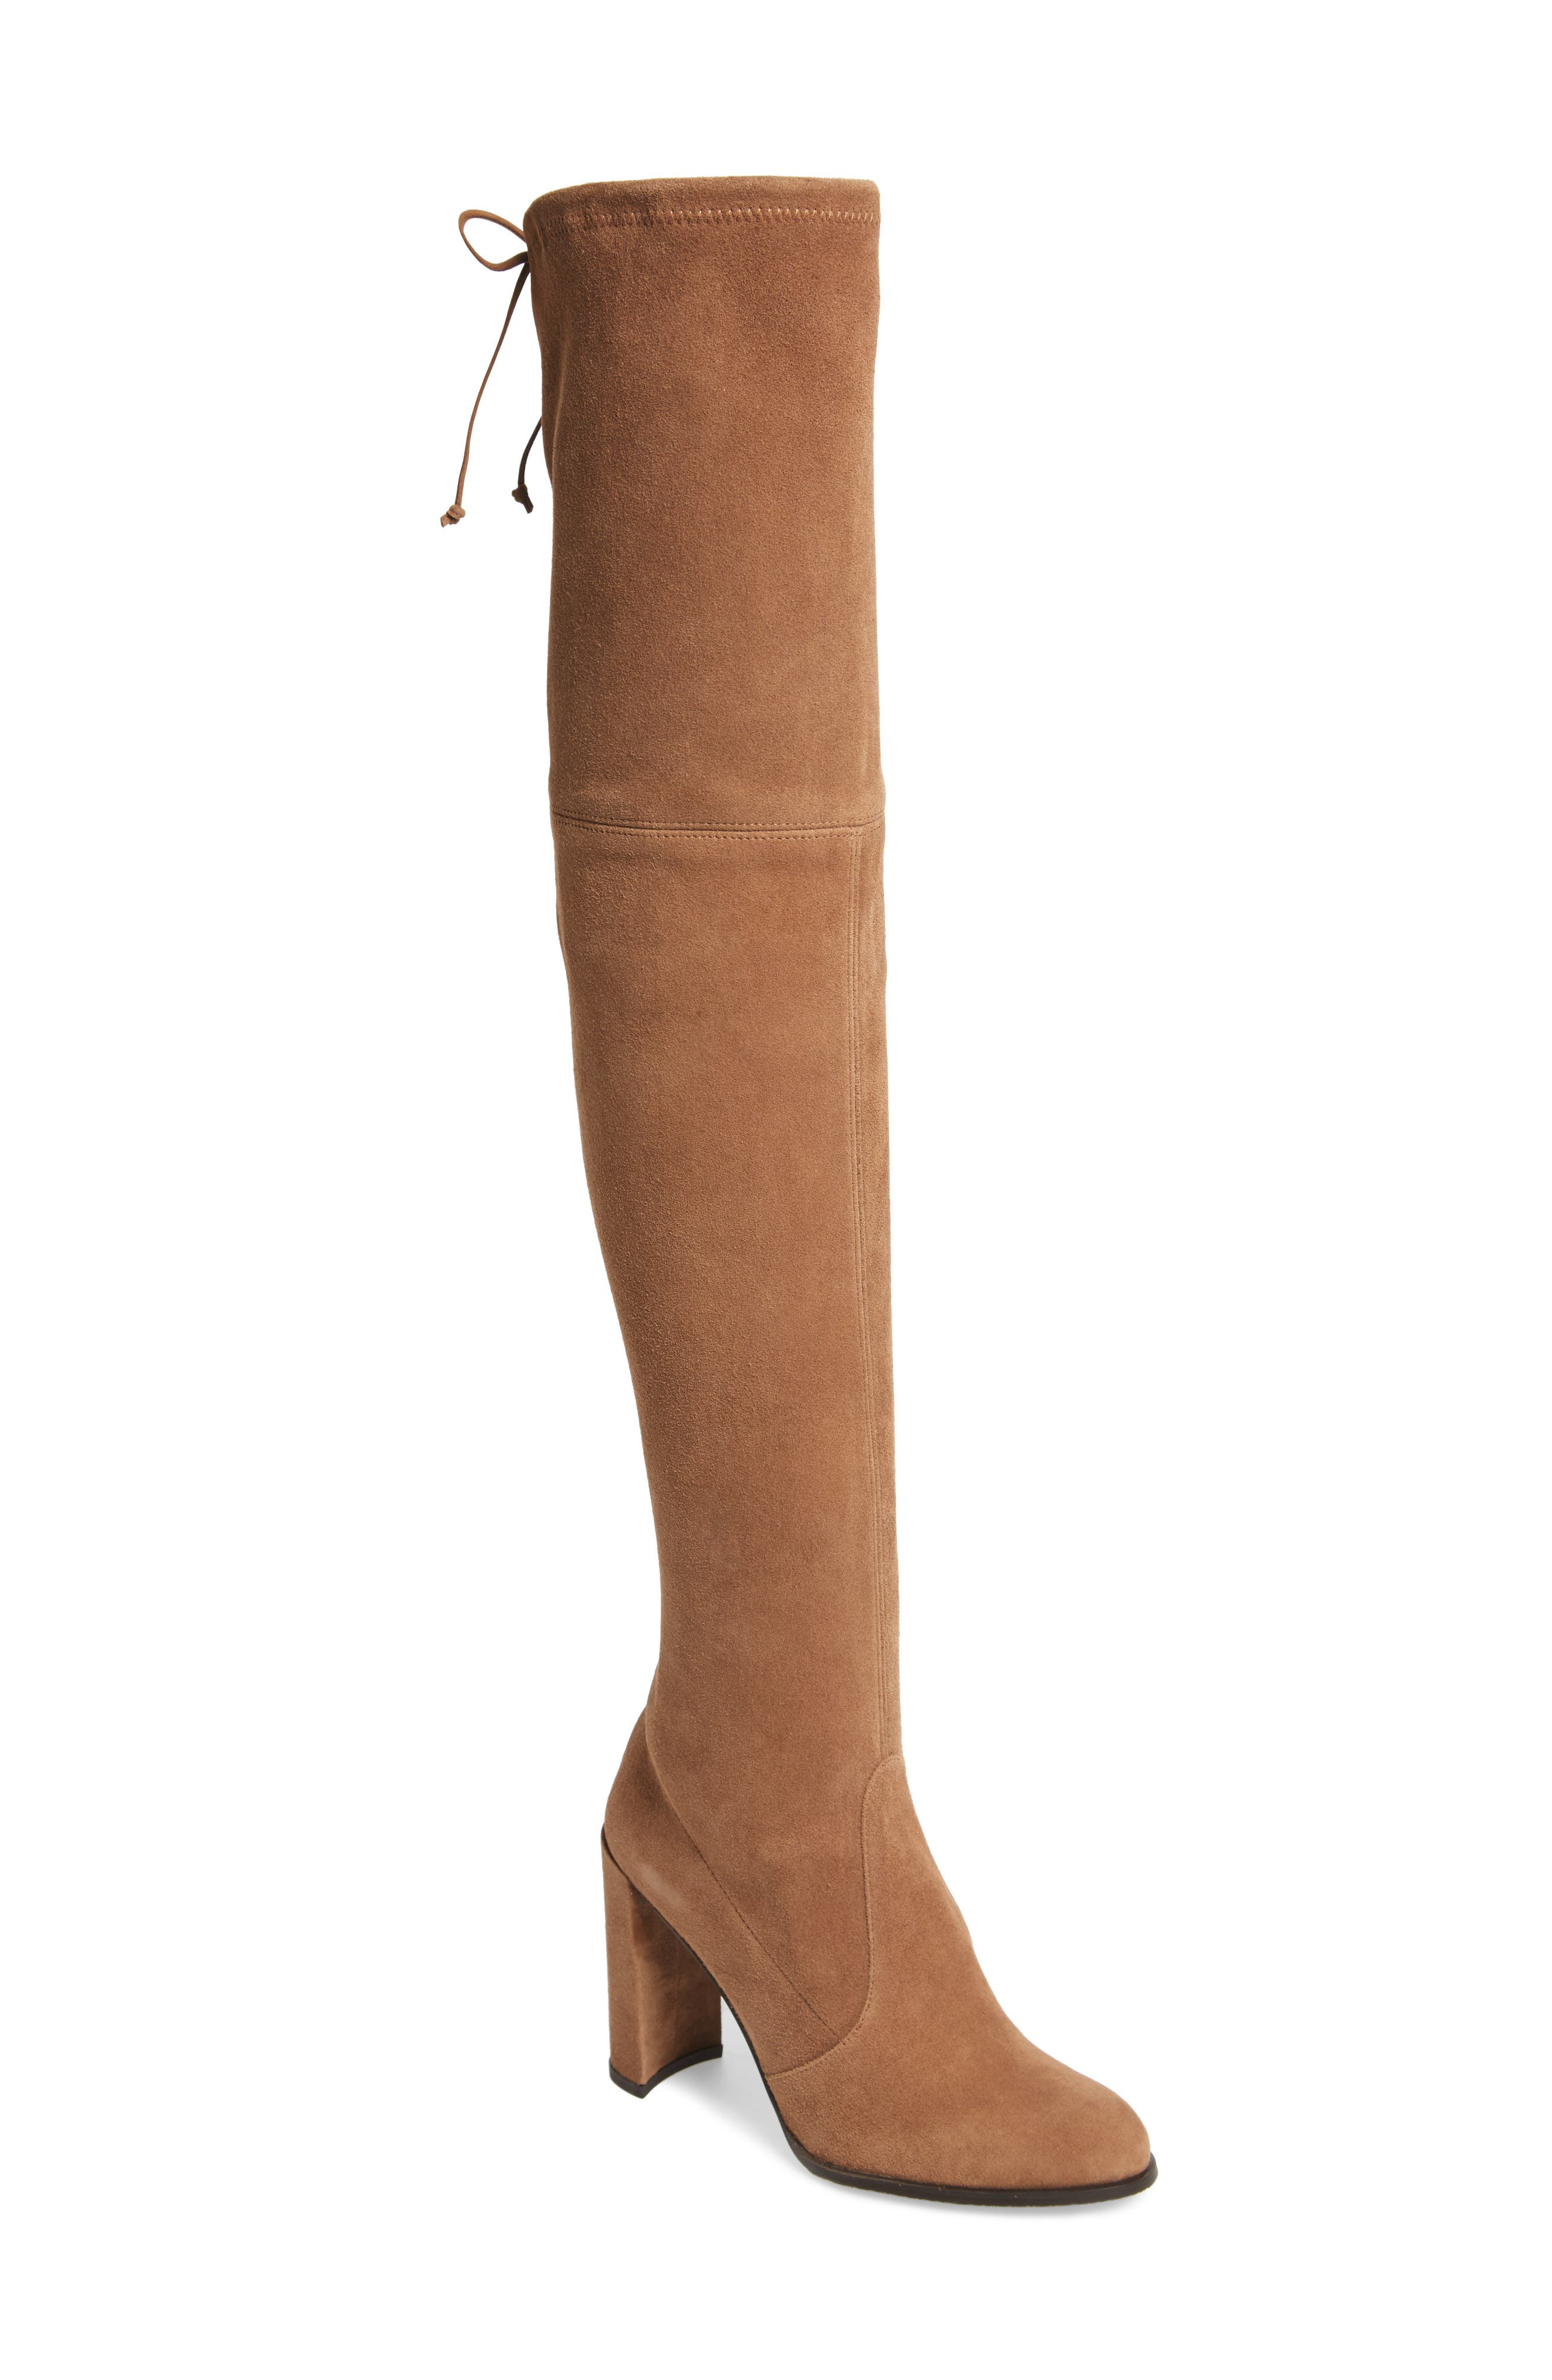 Hiline Over the Knee Boot,                         Main,                         color, Nutmeg Suede